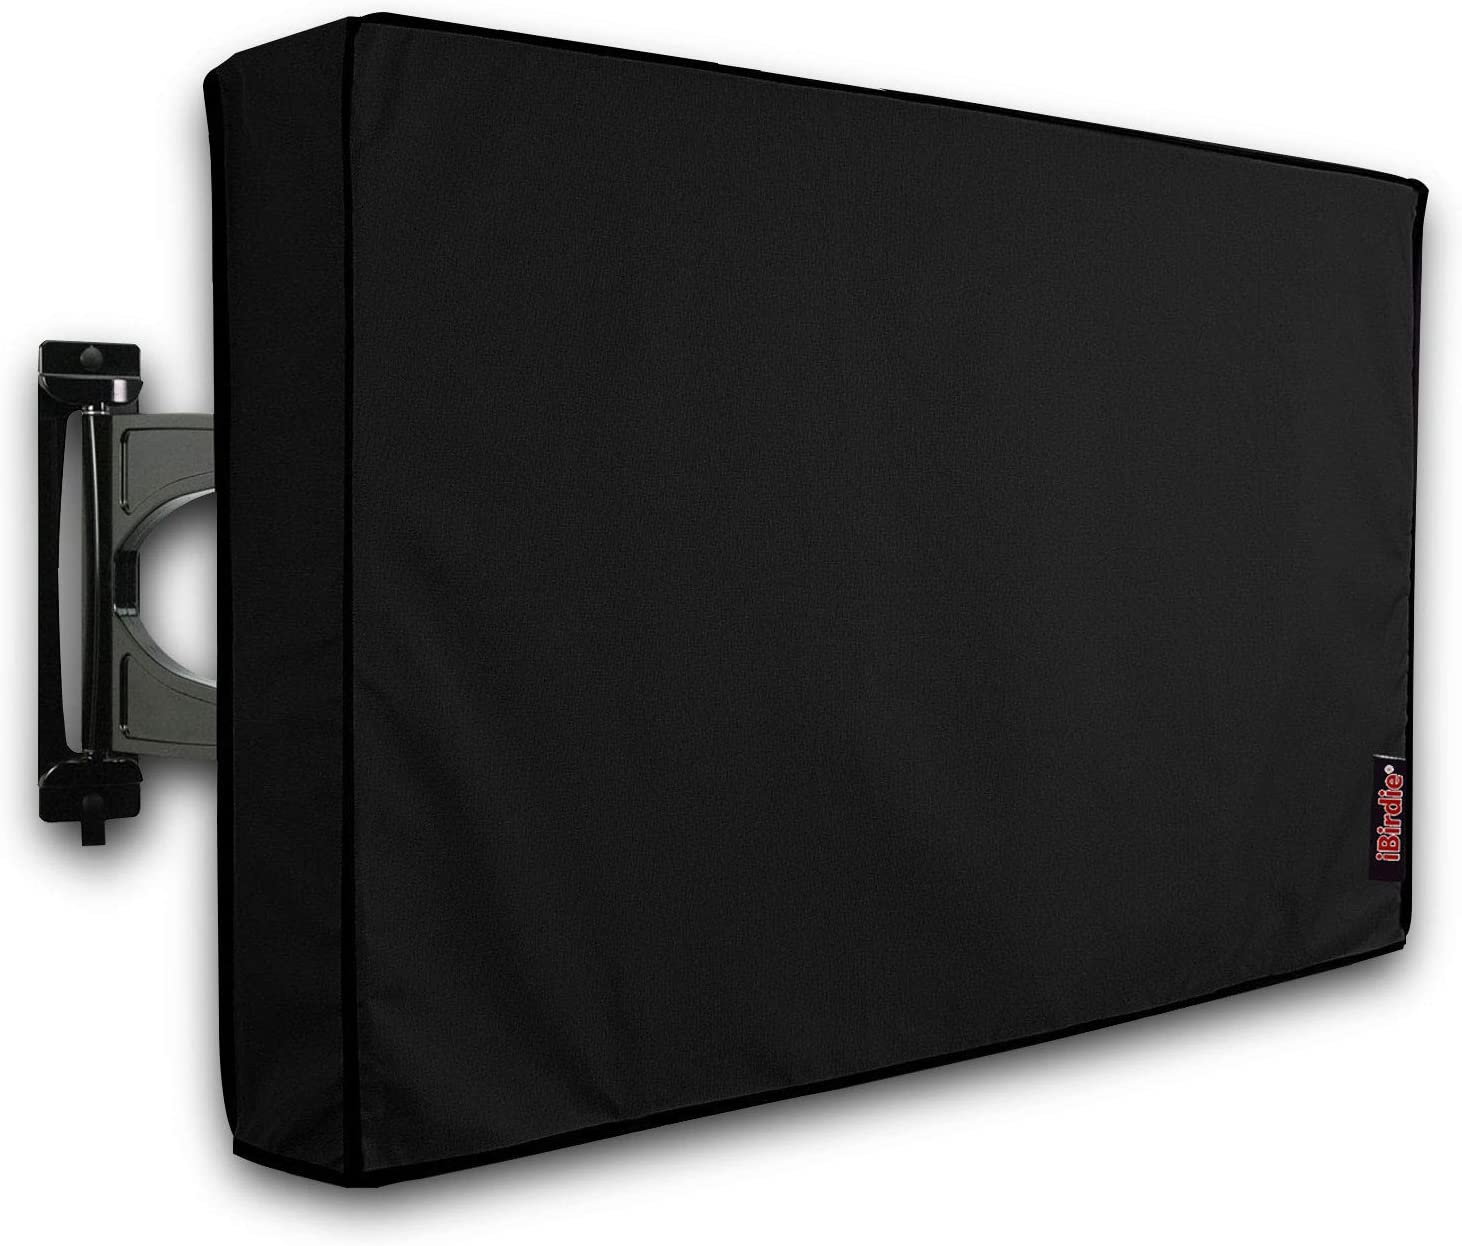 Outdoor Waterproof and Weatherproof TV Cover for 50 inches TV